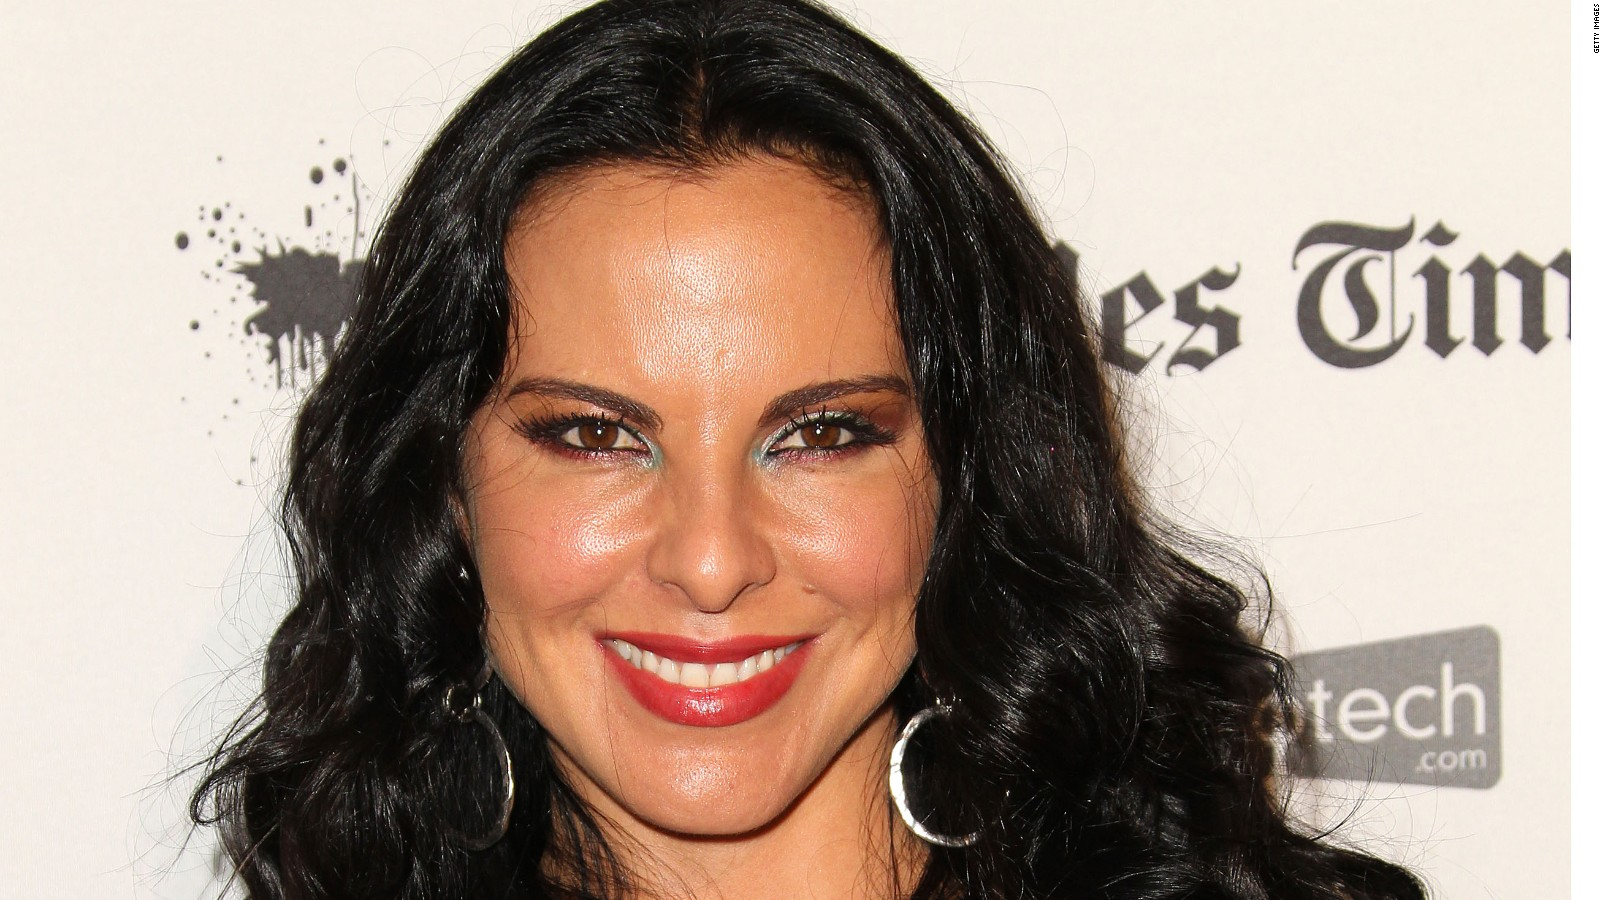 Kate Del Castillo Nude Photos 2019 - 2020 - Hot Leaked Naked Pics Of Kate Del Castillo-8462